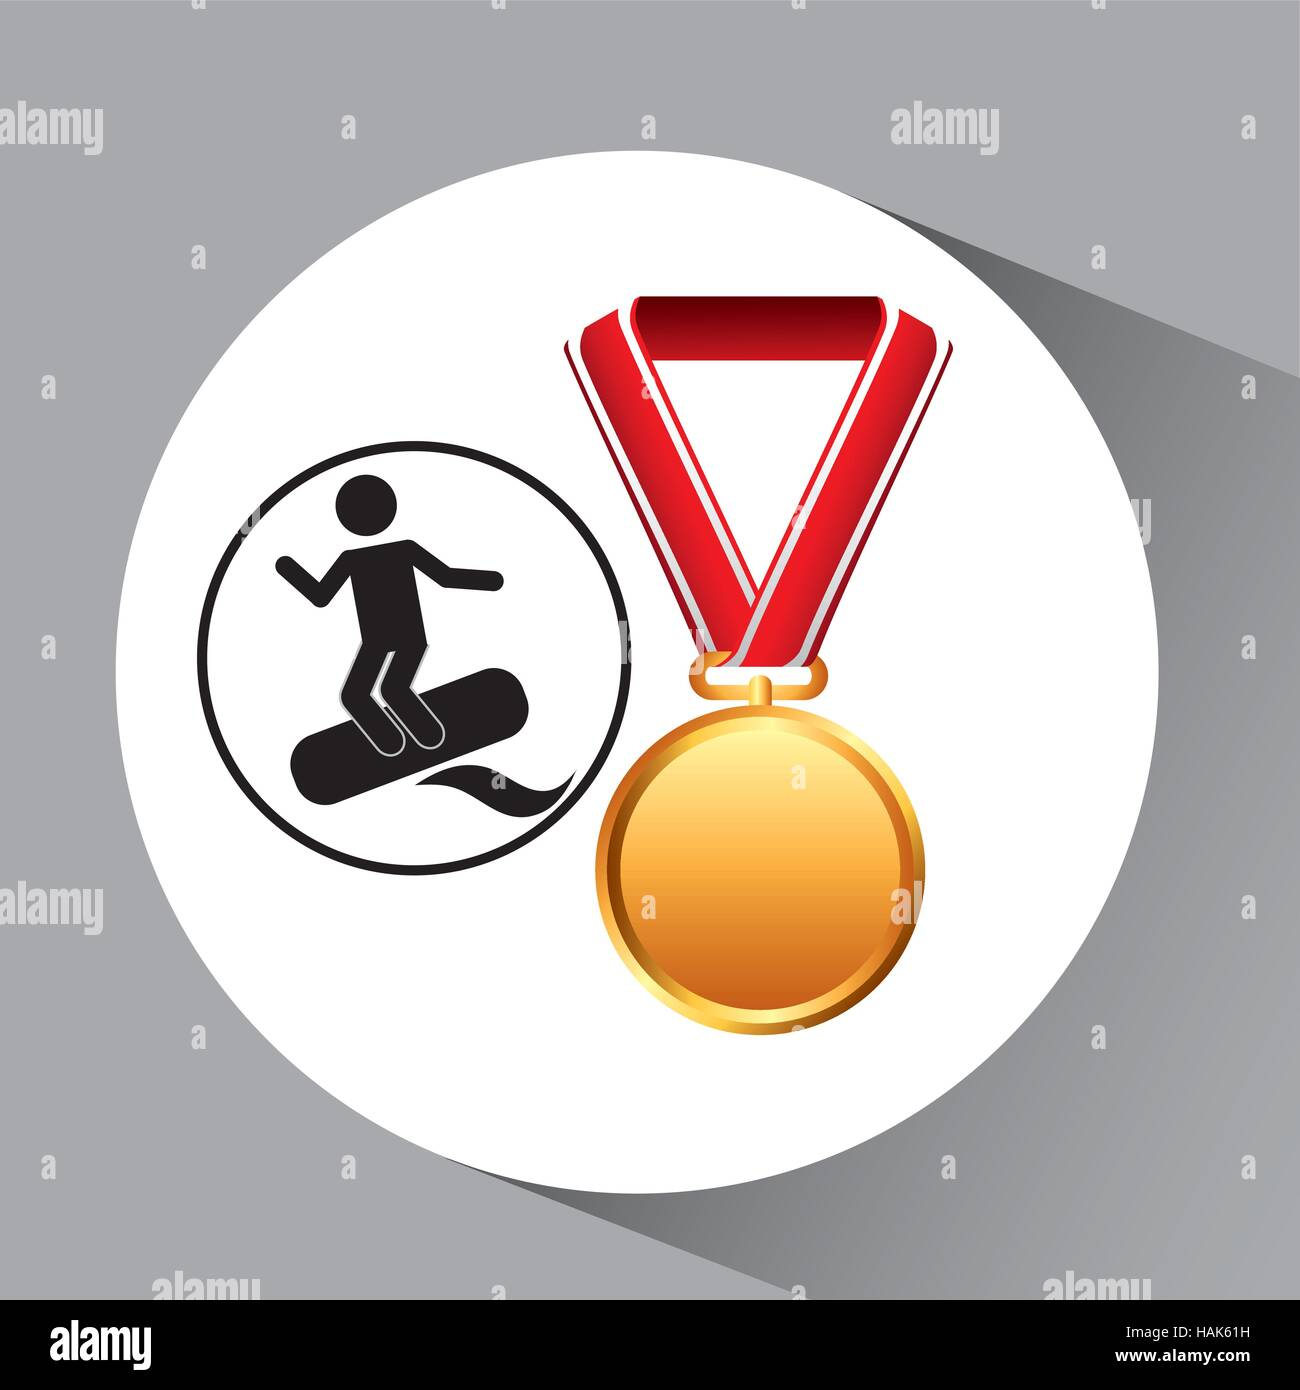 Medal Wallpaper Stockfotos & Medal Wallpaper Bilder - Alamy